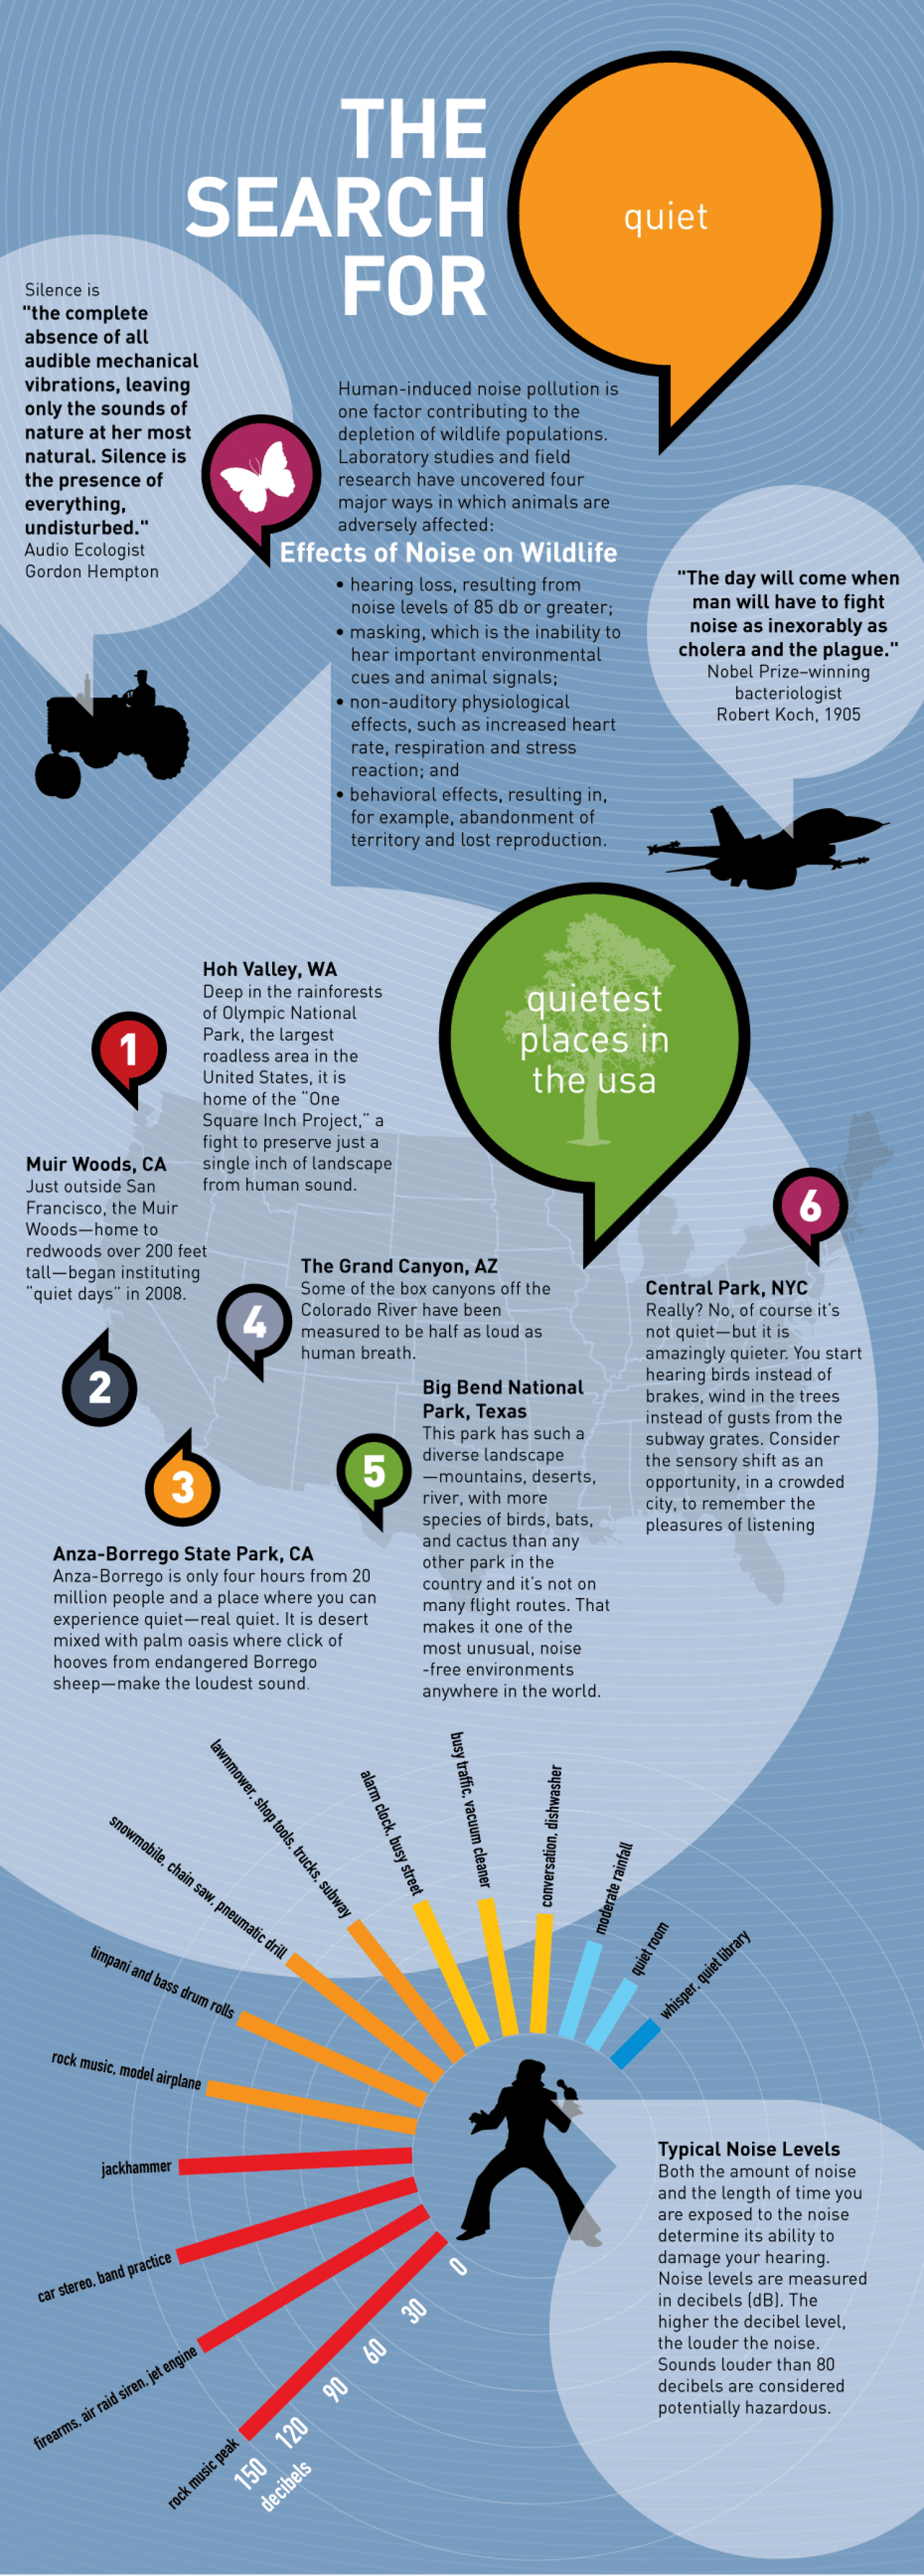 The Search for Quiet Infographic